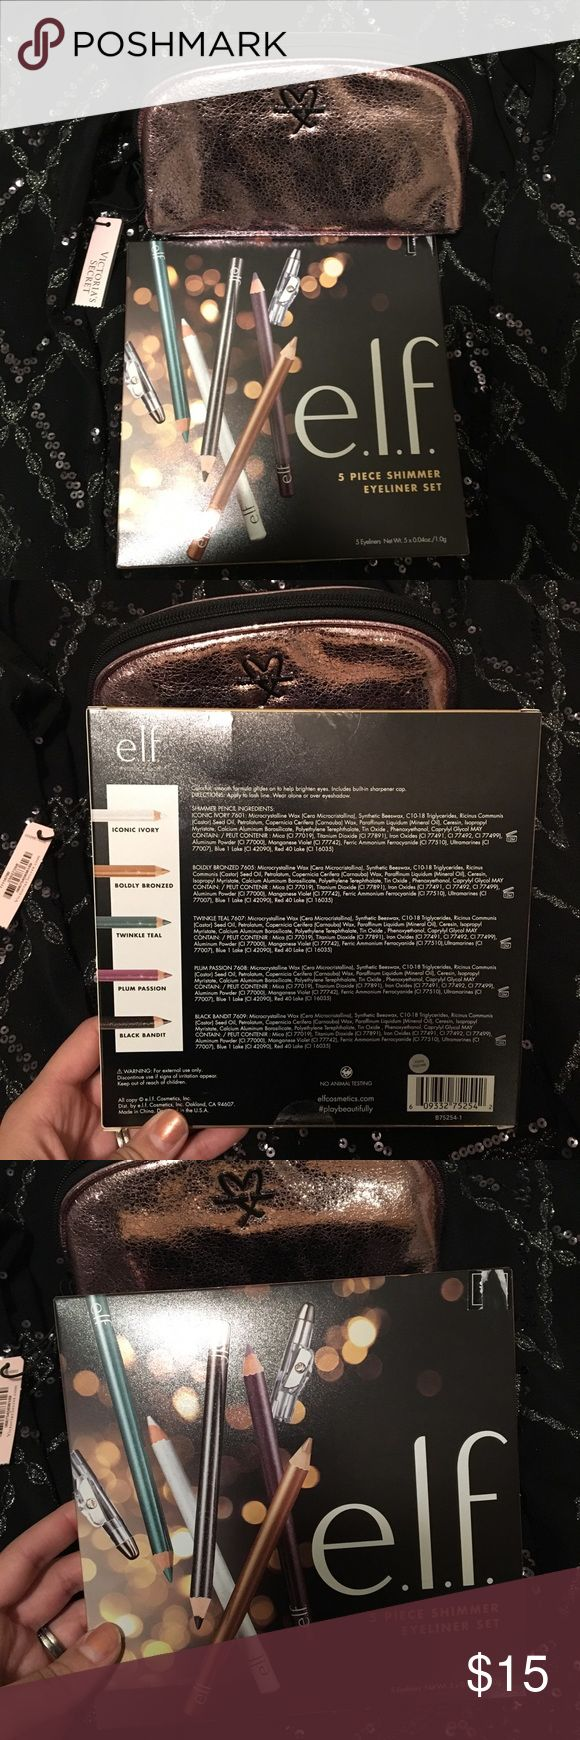 Victoria Secret beauty bag & elf eyeliner set 2 items - buy as a set  Brand new Metallic crackle on- the-go beauty bag in pink by Victoria secret and e.l.f. 5 piece shimmer eyeliner set. Eyeliner set comes with the following colors; iconic ivory, boldly bronzed, twinkle teal, plum passion and black bandit.   Both new items never opened or used. Victoria's Secret Makeup Eyeliner